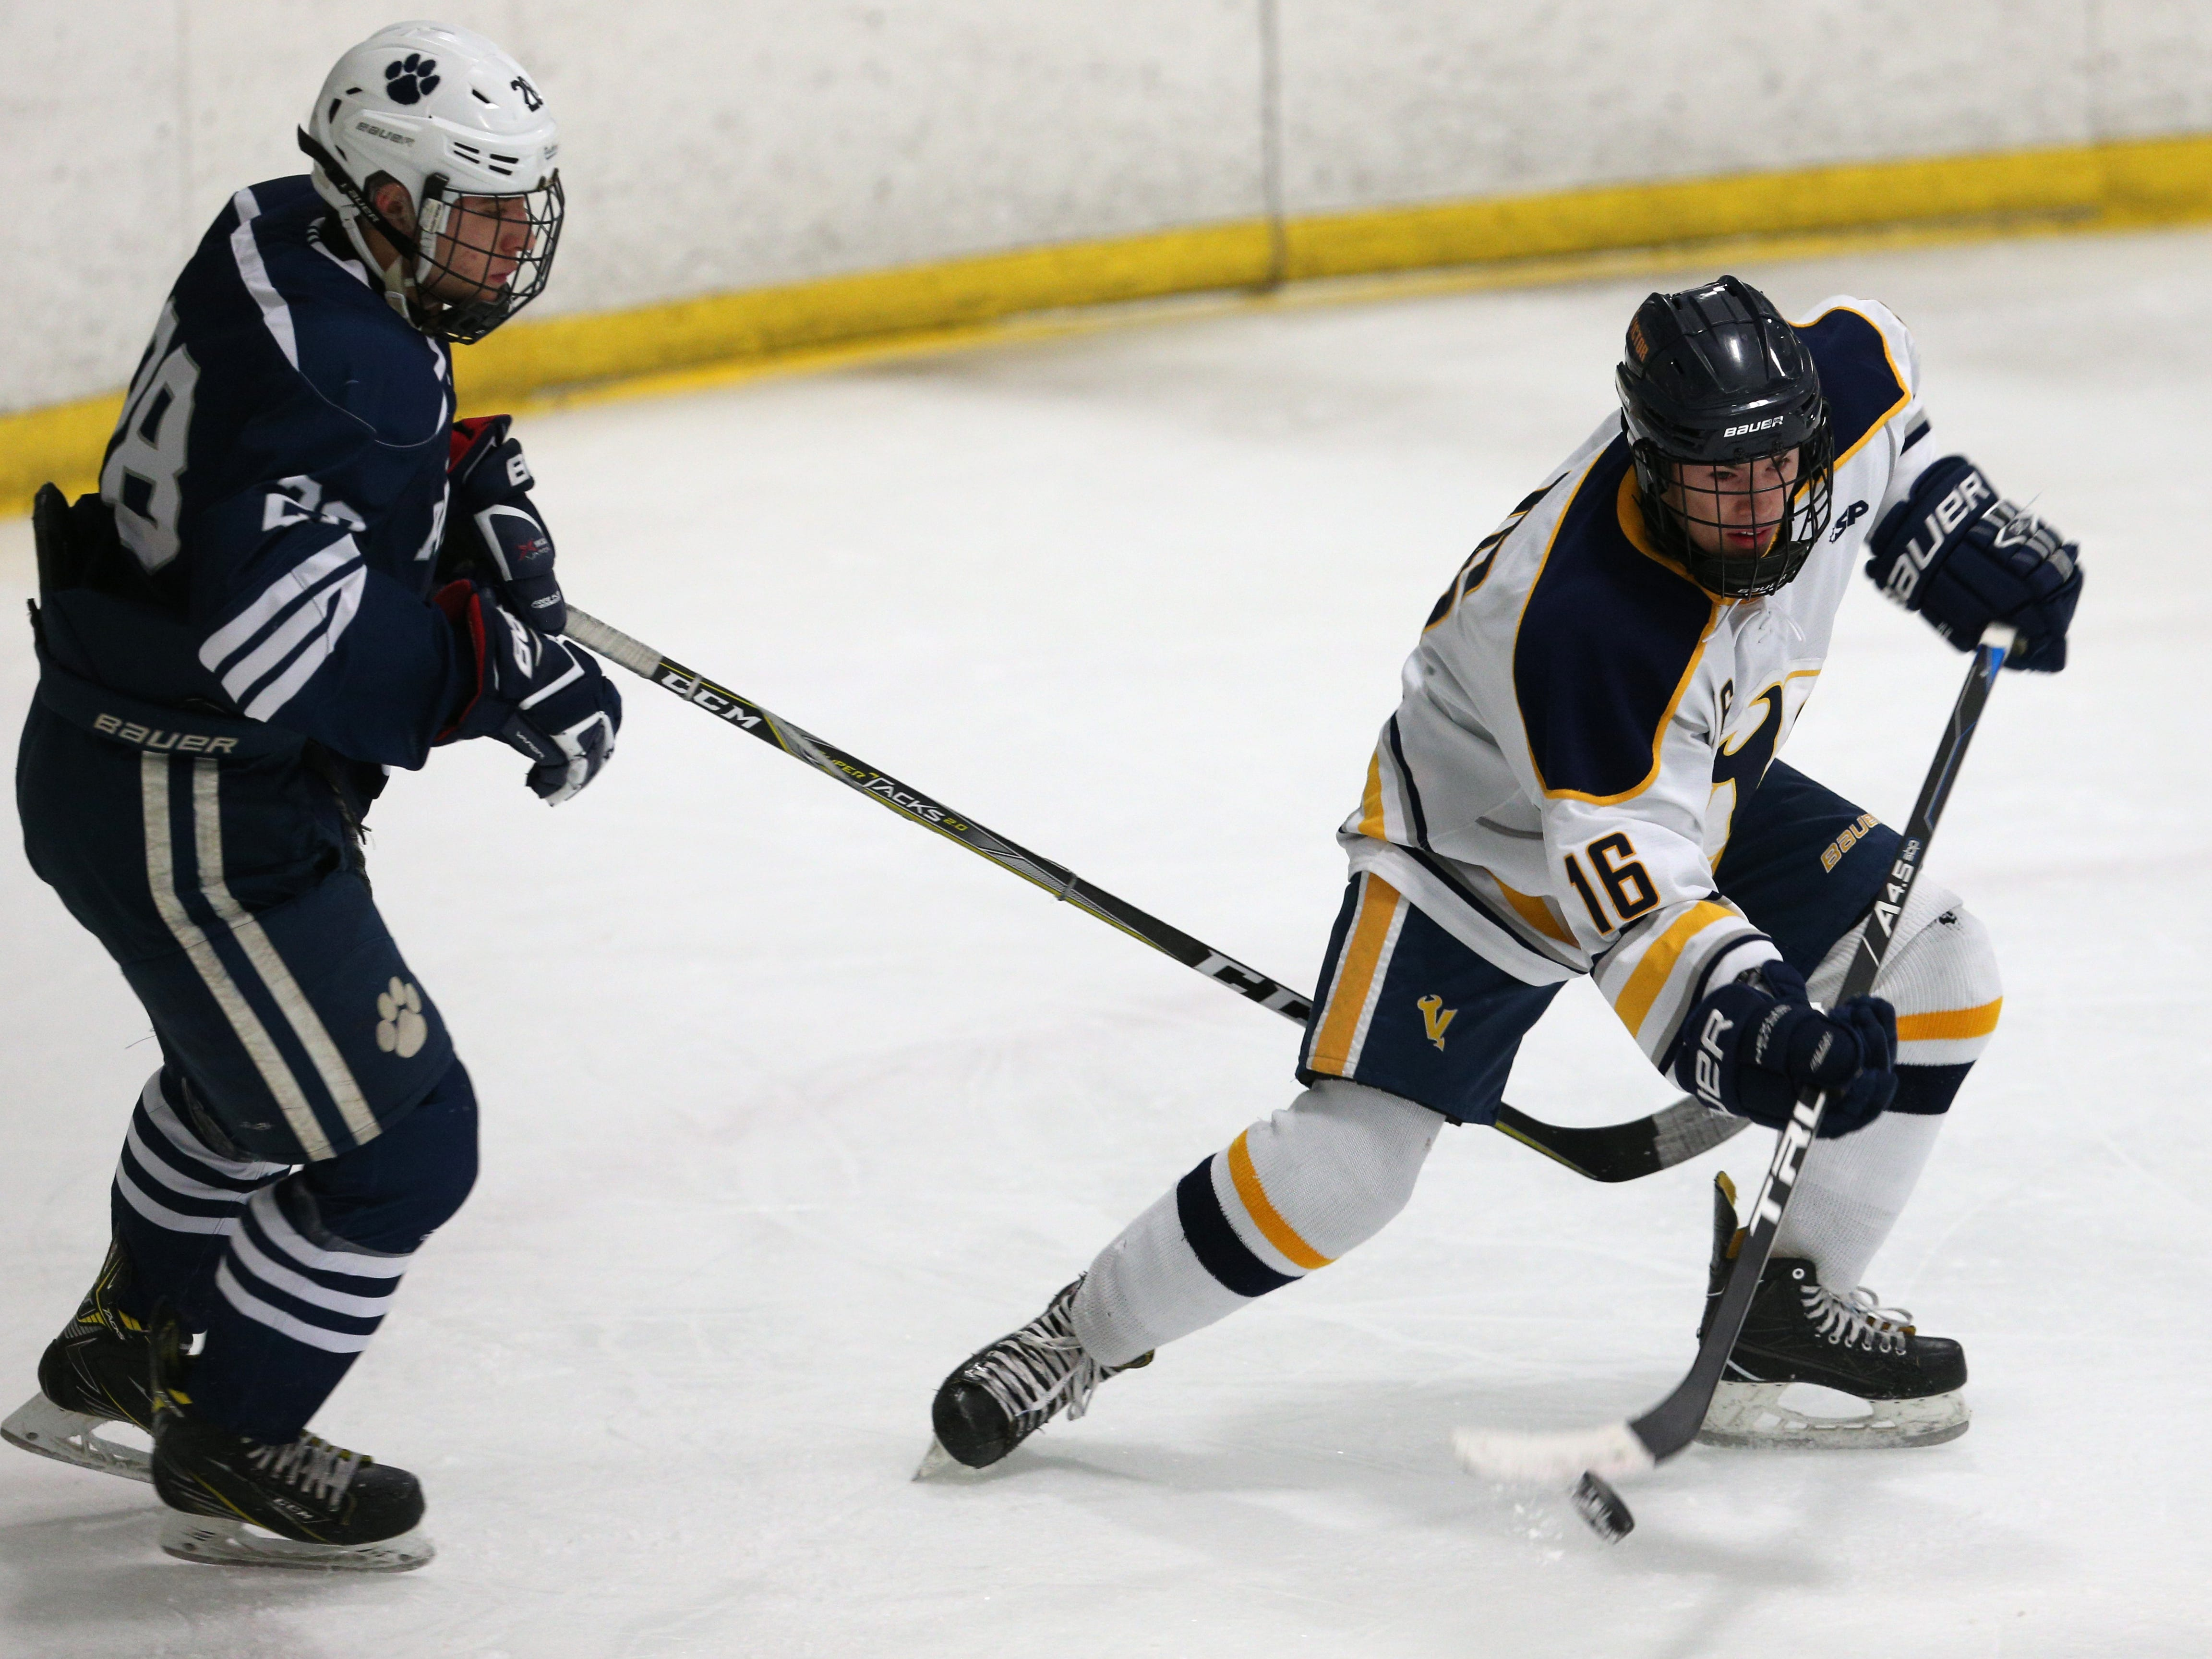 Victor #16 Riley Hauf against Pittsford.